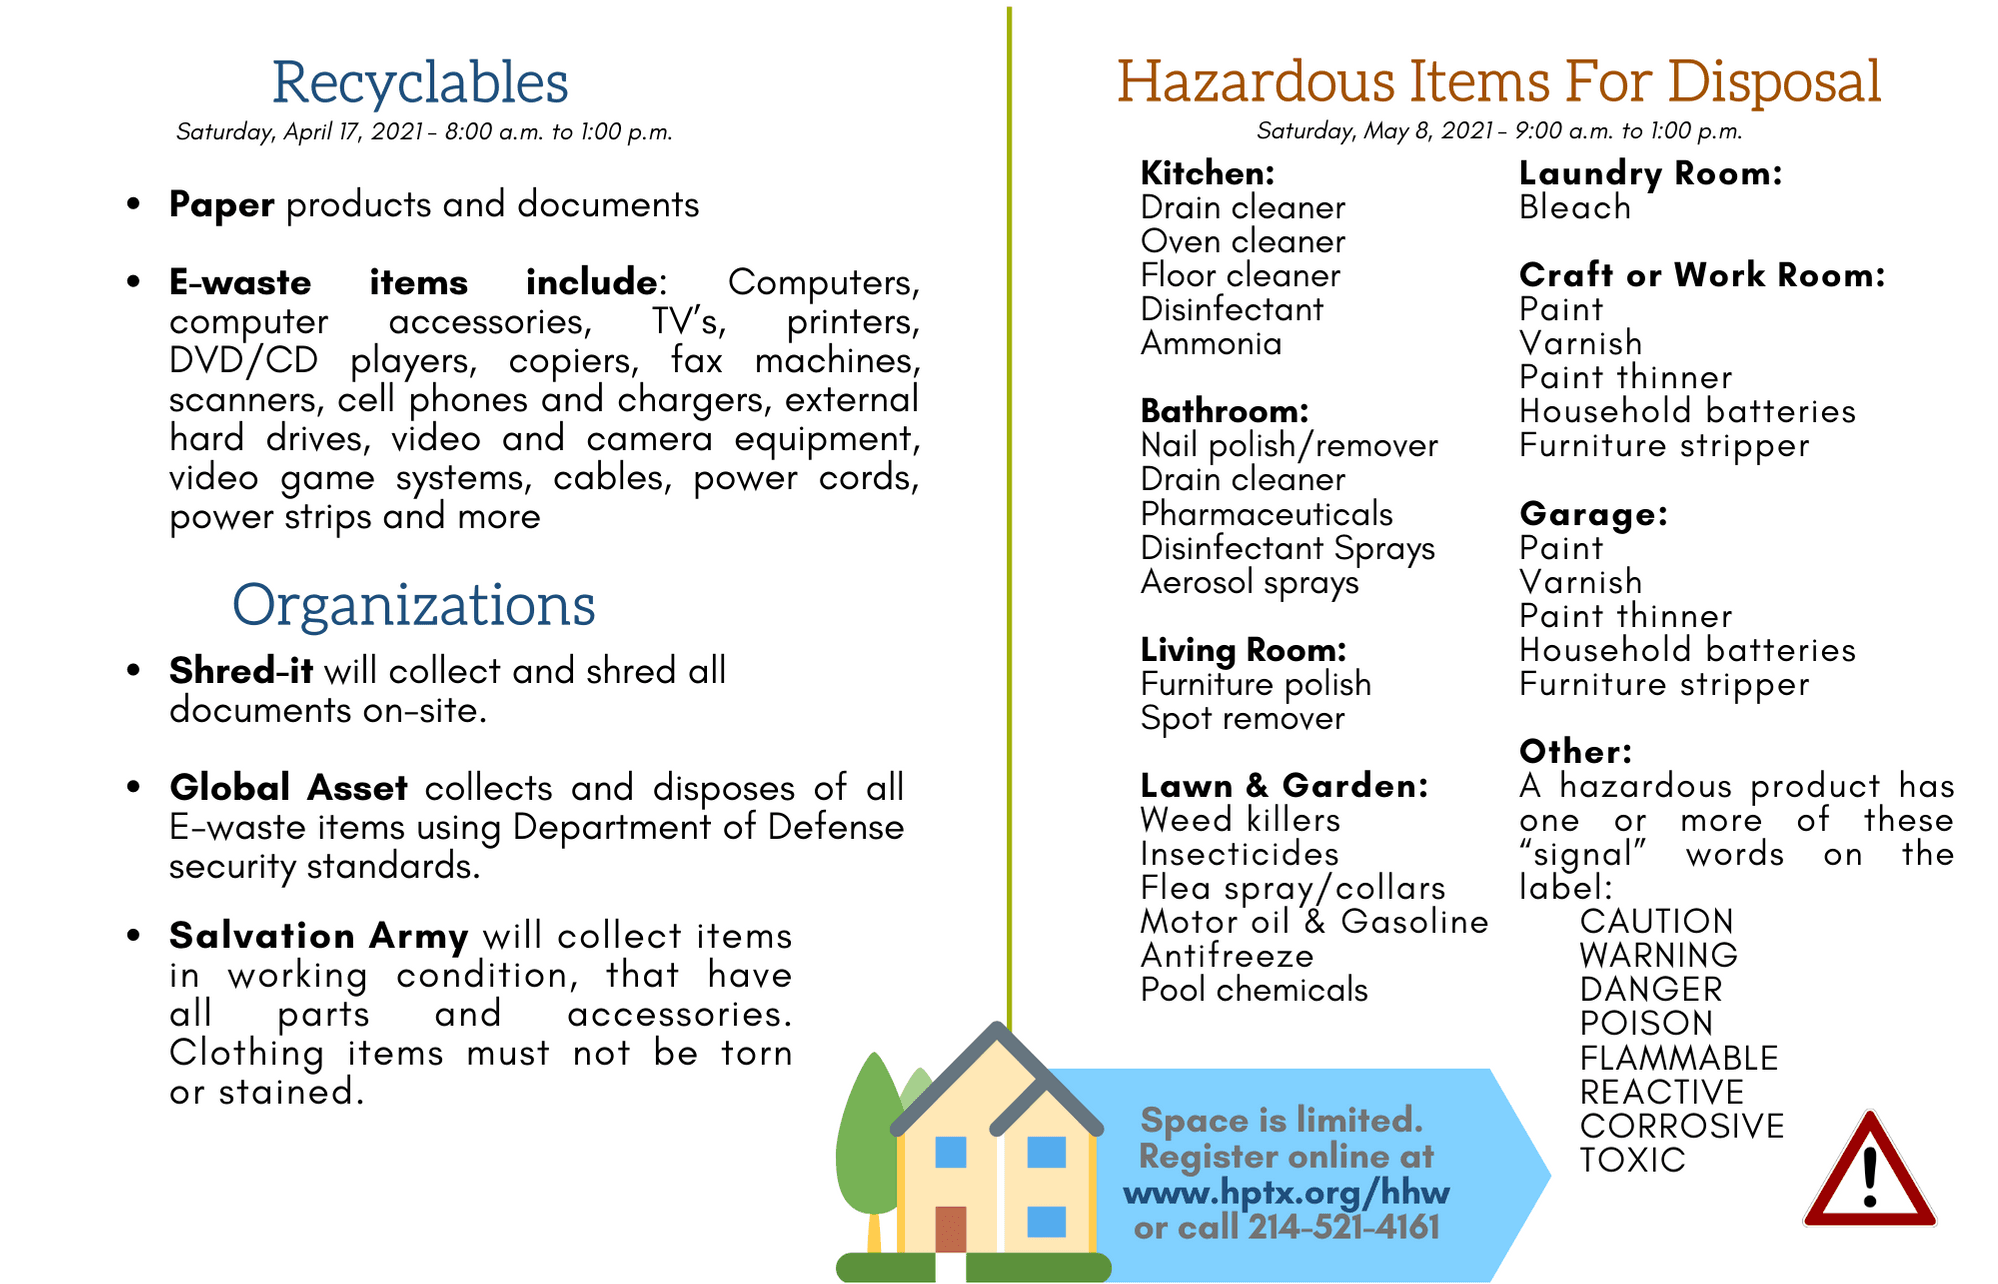 Image of information of what tiems are hazardous in your home